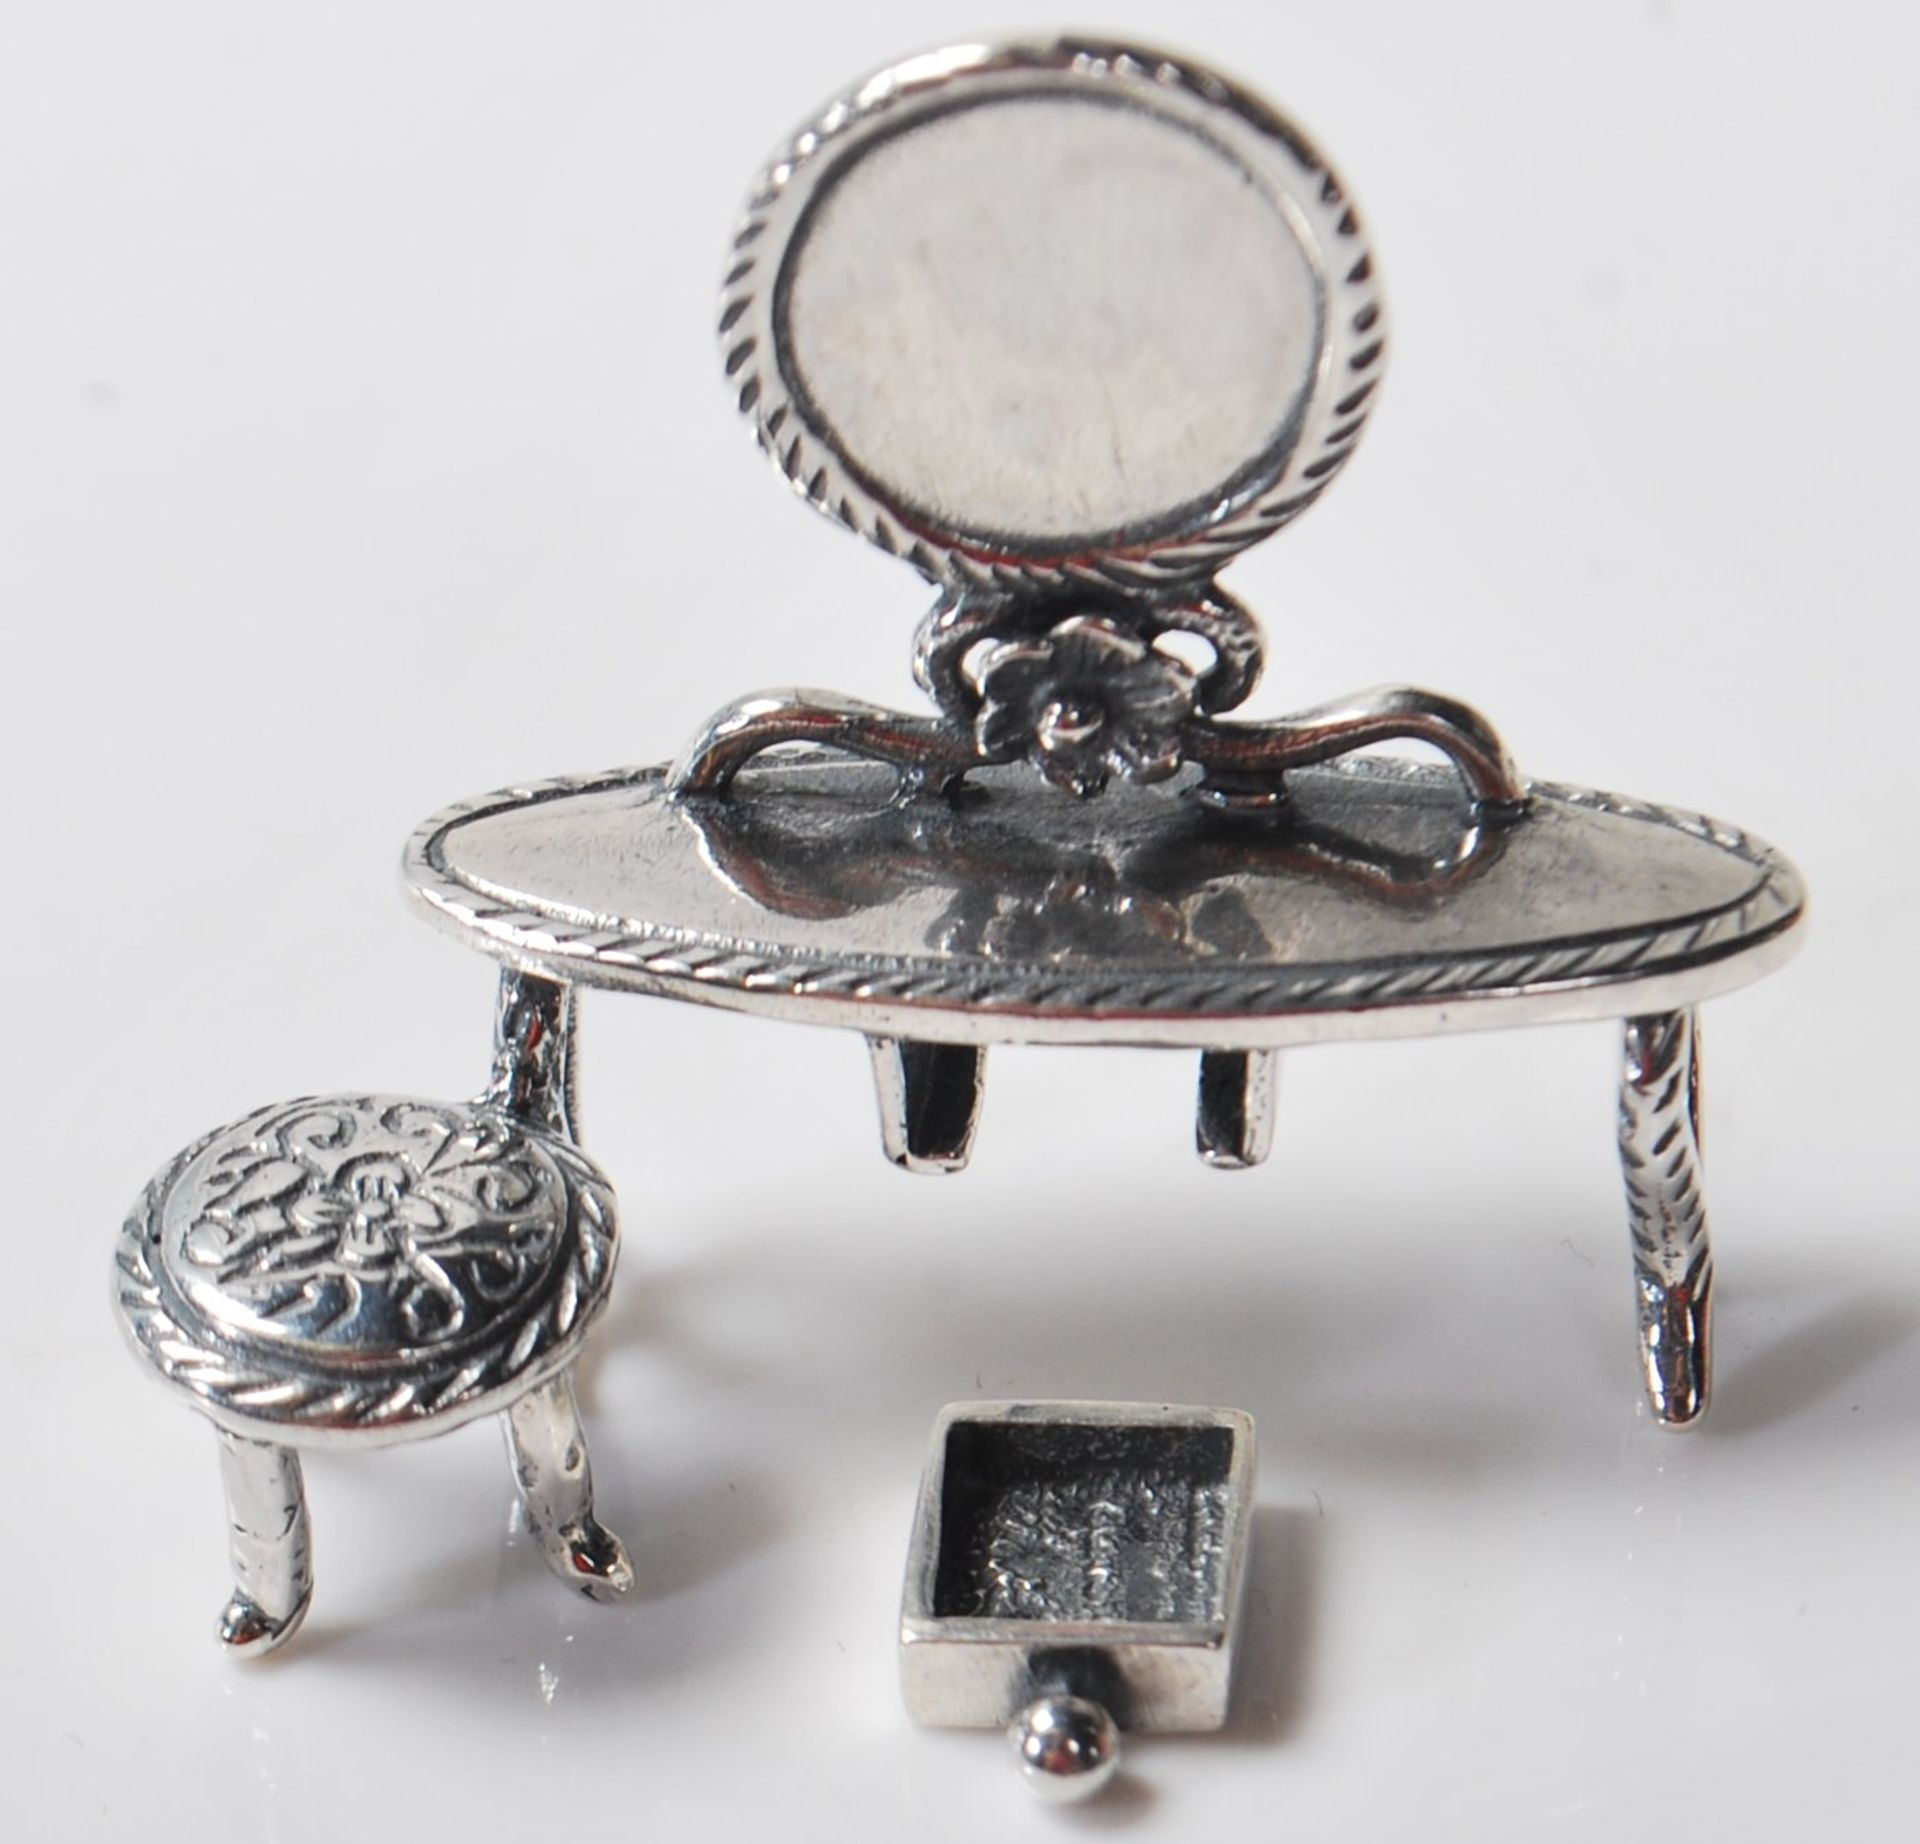 SILVER DRESSING TABLE FIGURINE - Image 3 of 5